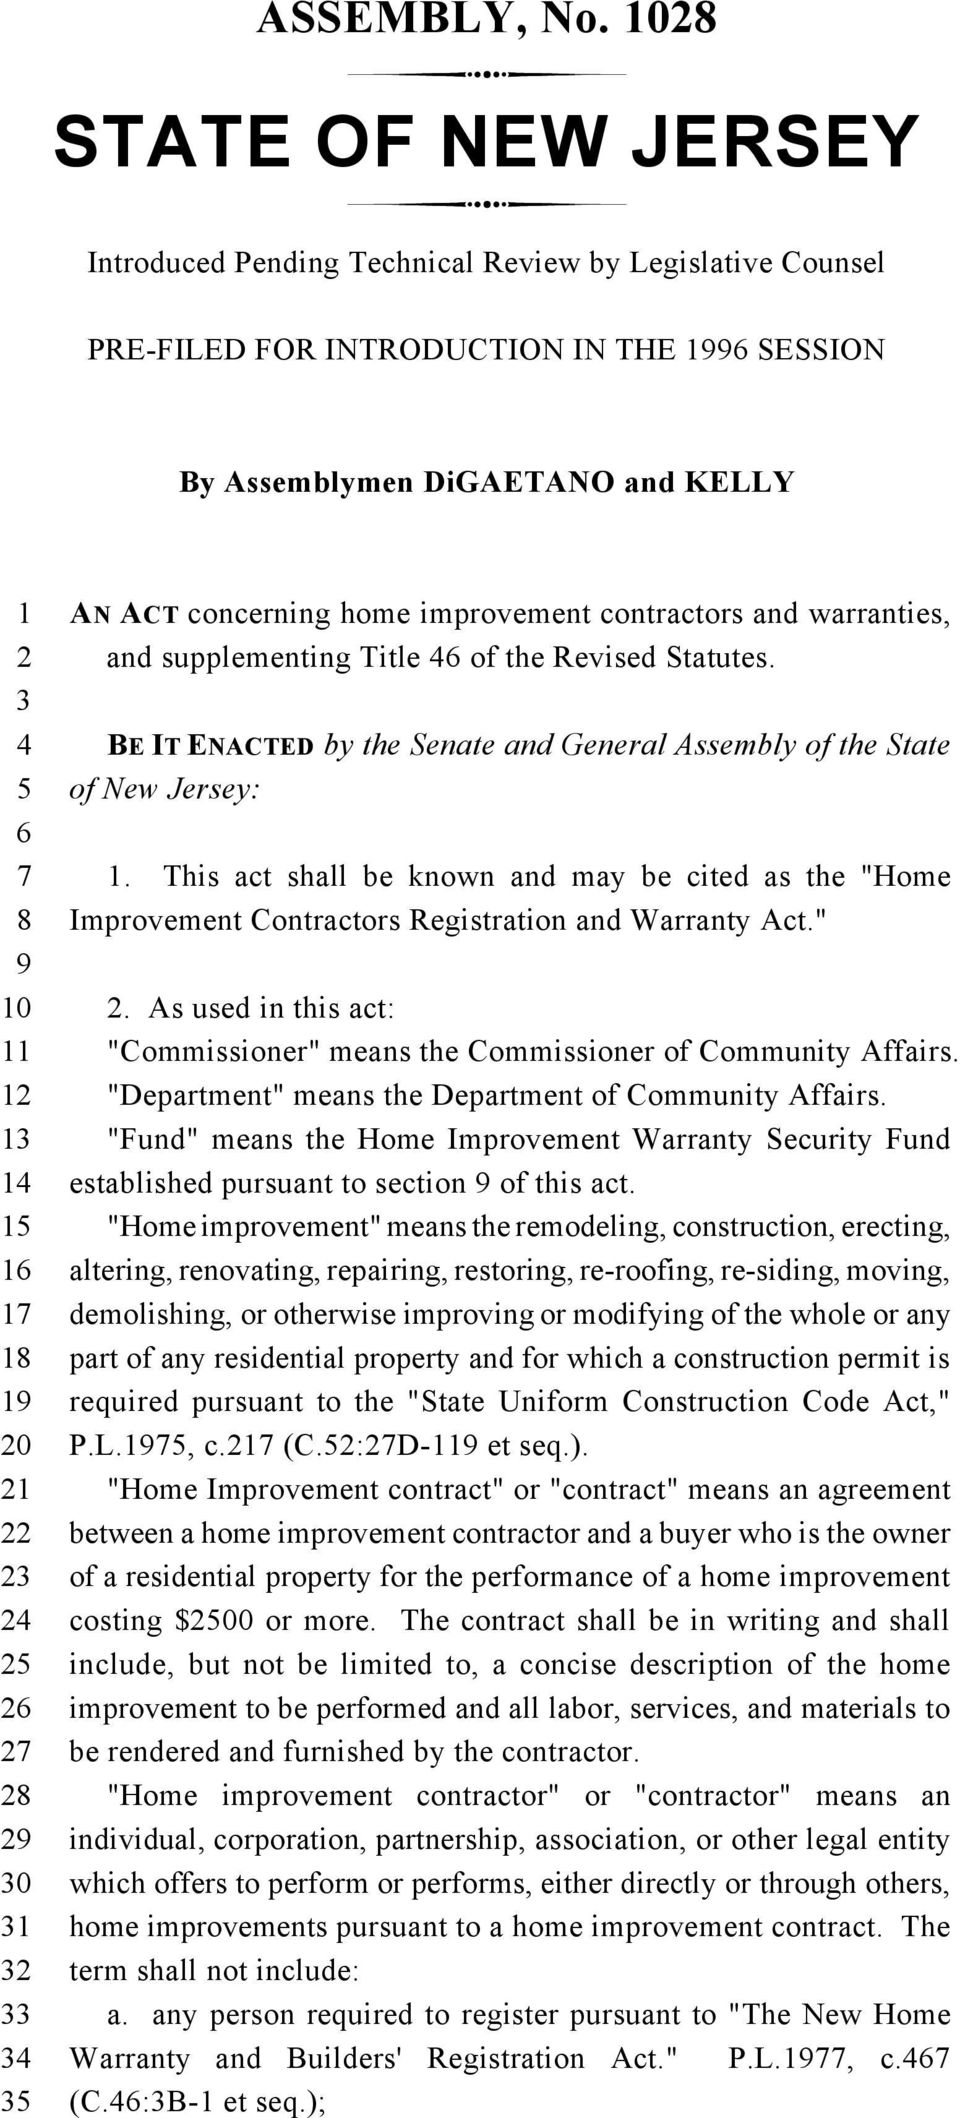 contractors and warranties, and supplementing Title of the Revised Statutes. BE IT ENACTED by the Senate and General Assembly of the State of New Jersey:.